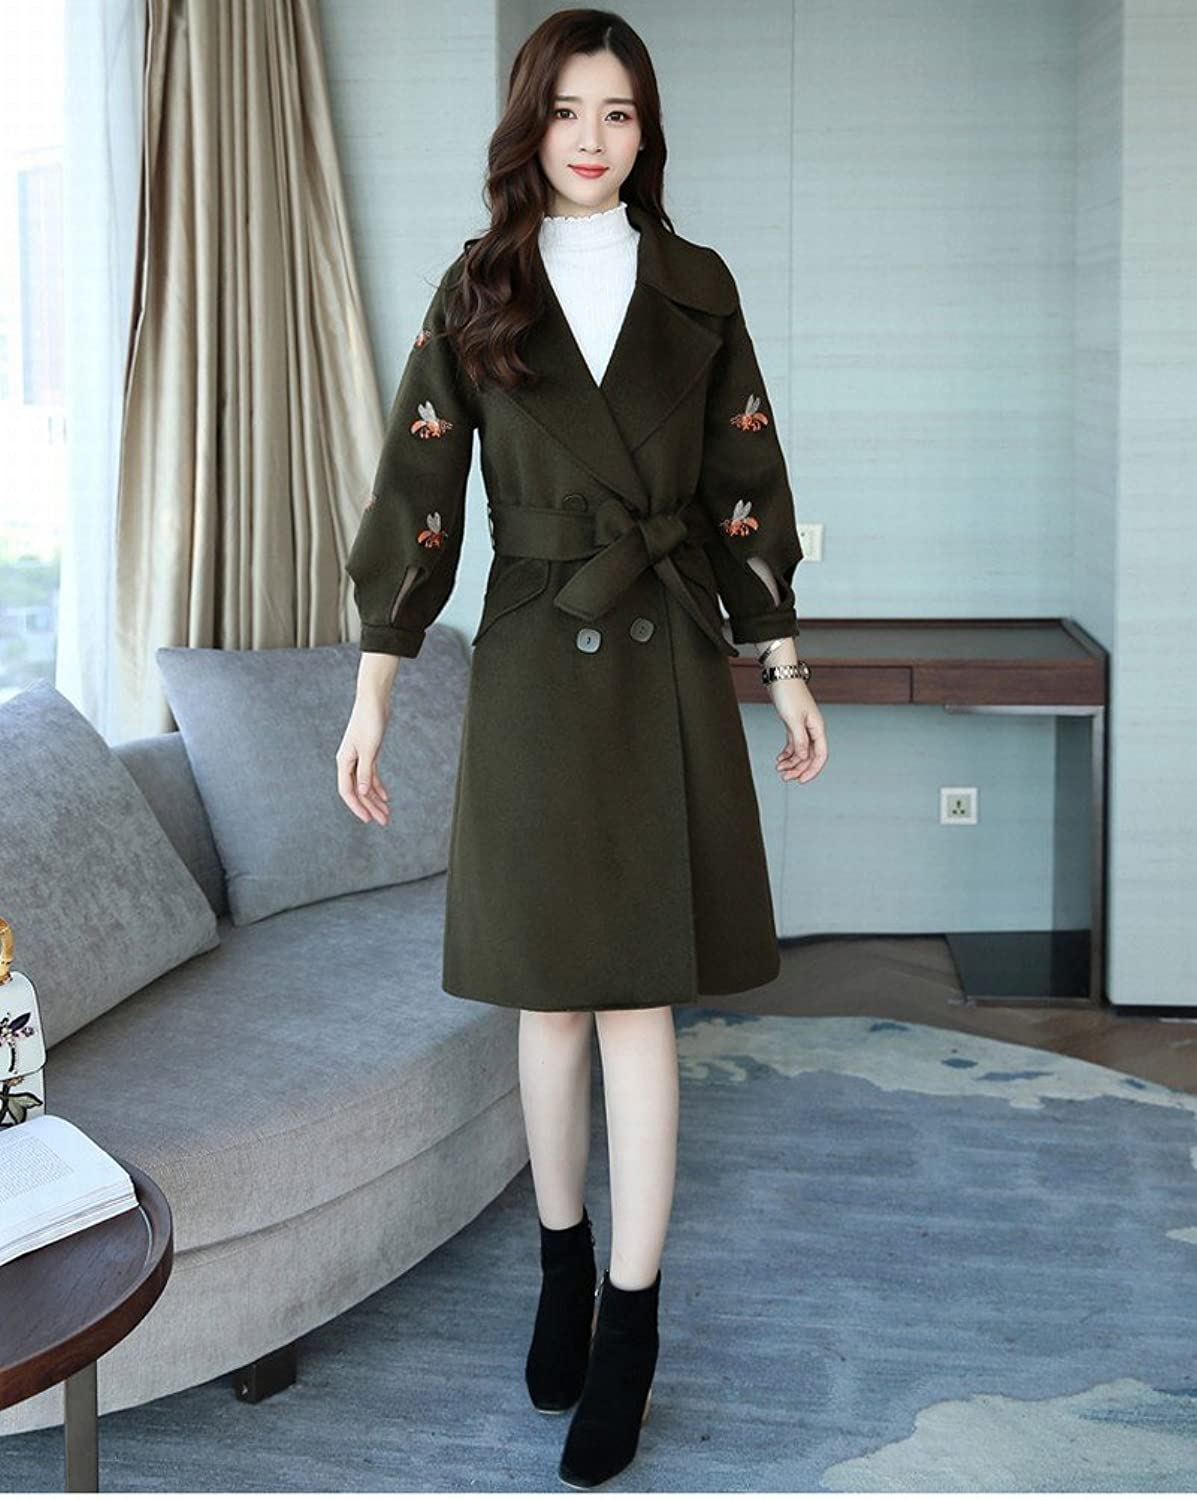 DEED Women's CoatStylish Long Coat Jacket Female Long Sleeve Temperament Elegant Sweet Bow Knot Clothing